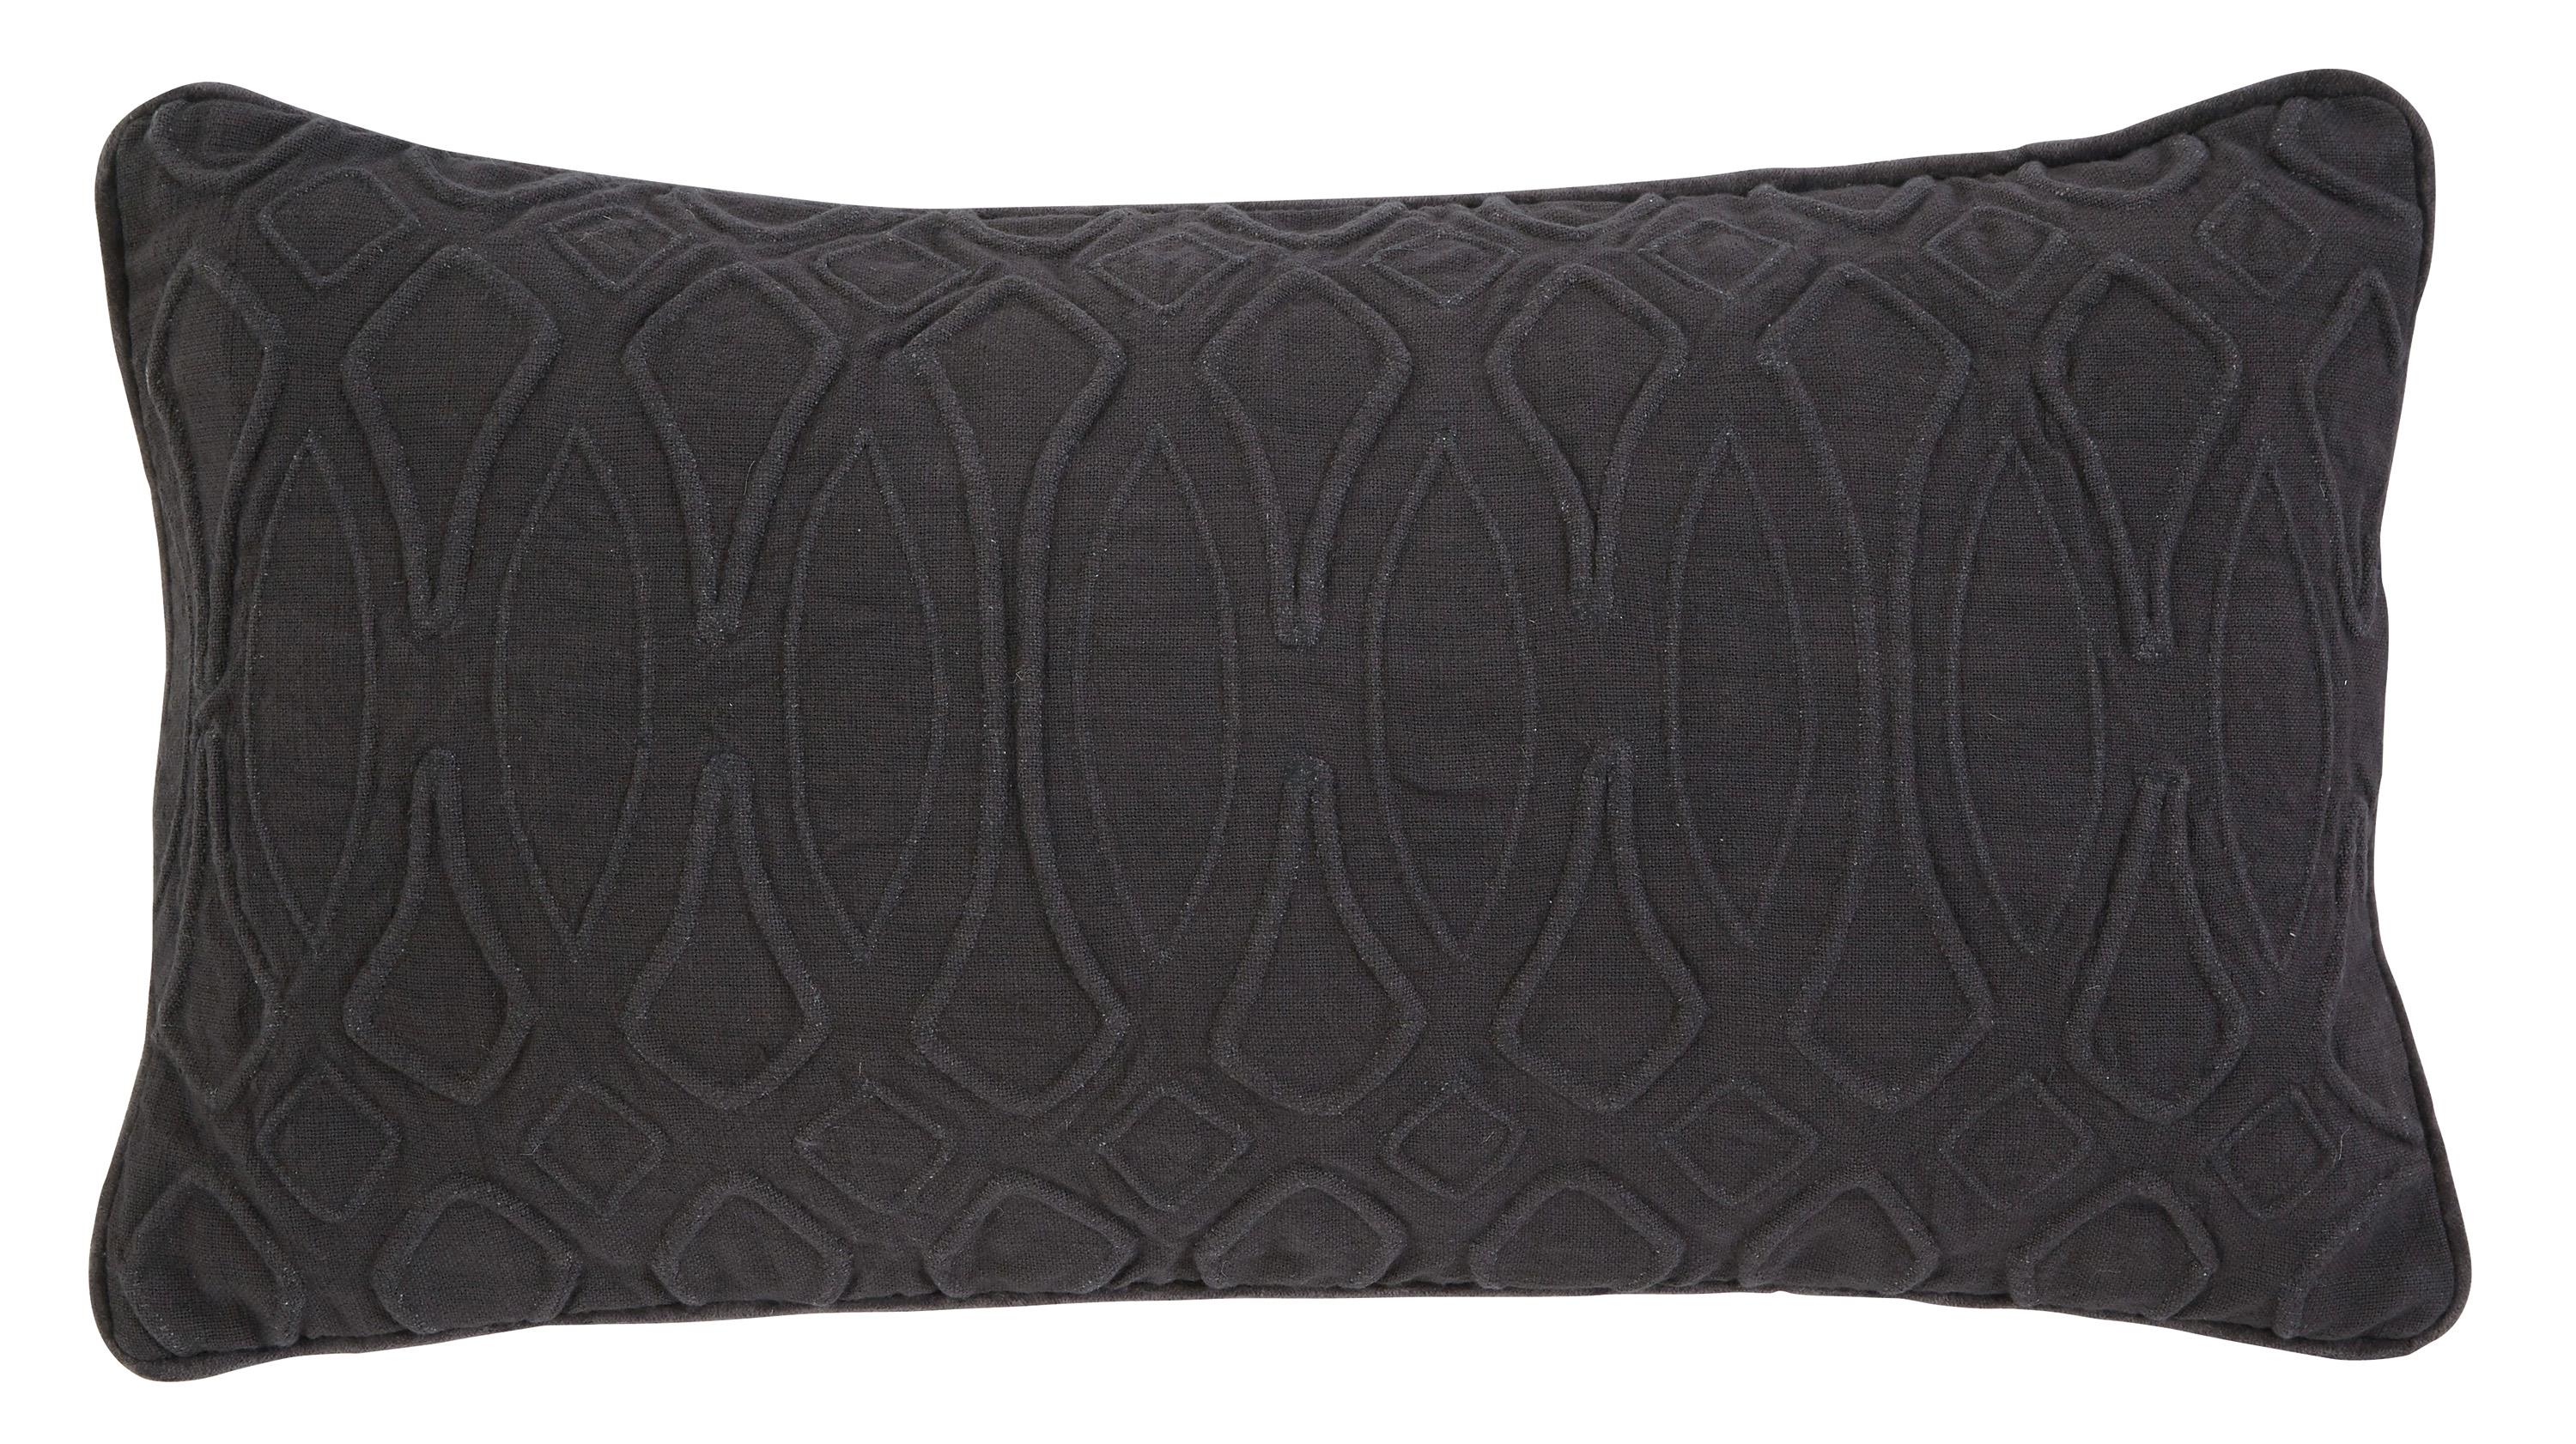 Signature Design by Ashley Pillows Solid - Ink Lumbar Pillow - Item Number: A1000361P